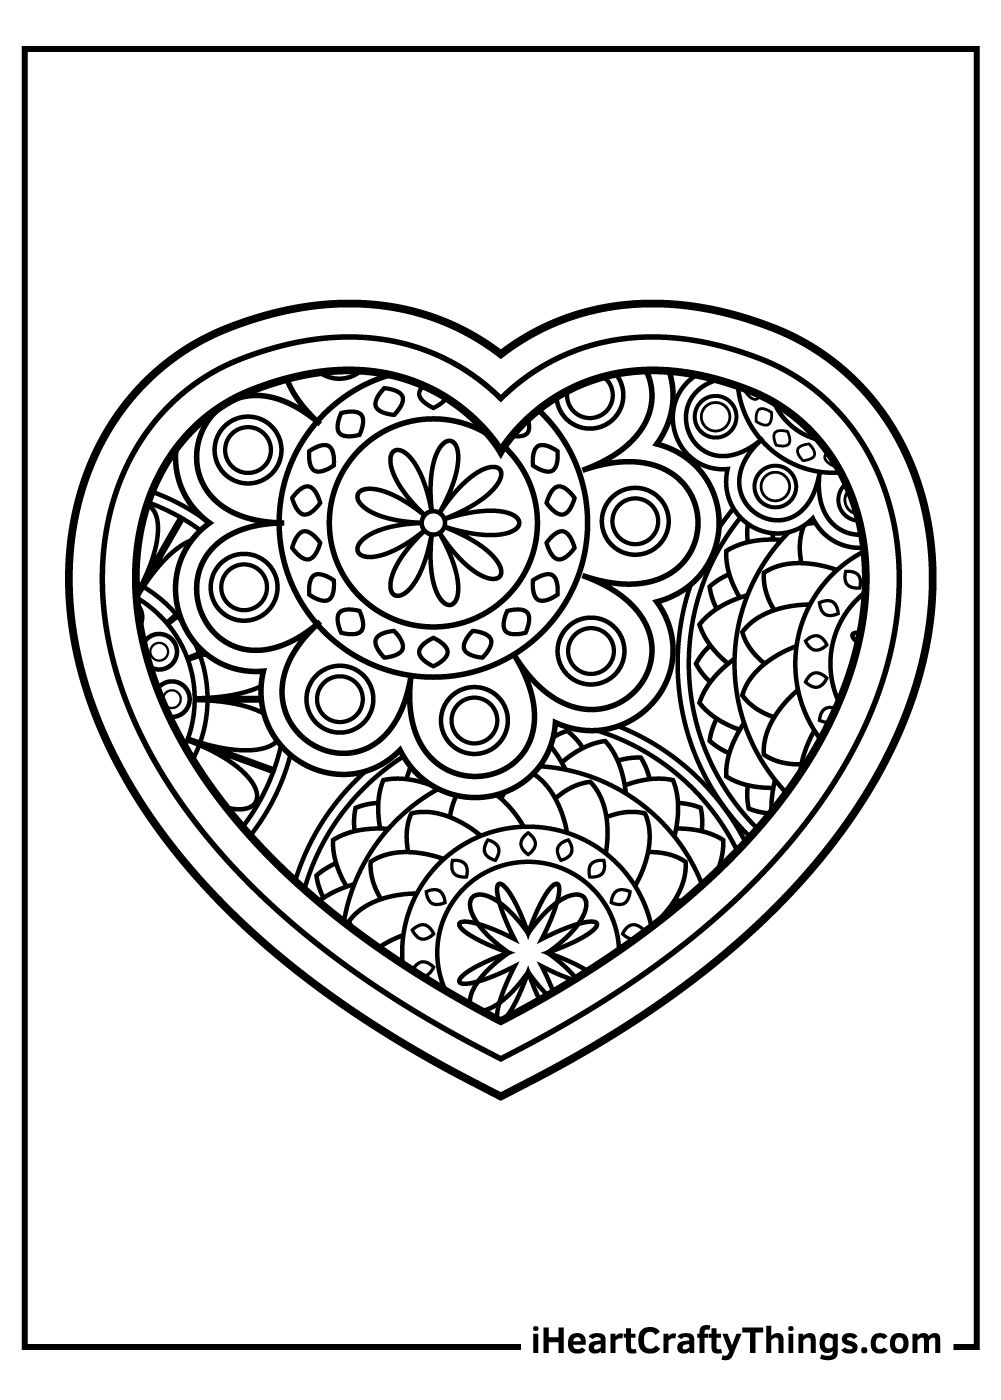 free adult valentine's coloring pages